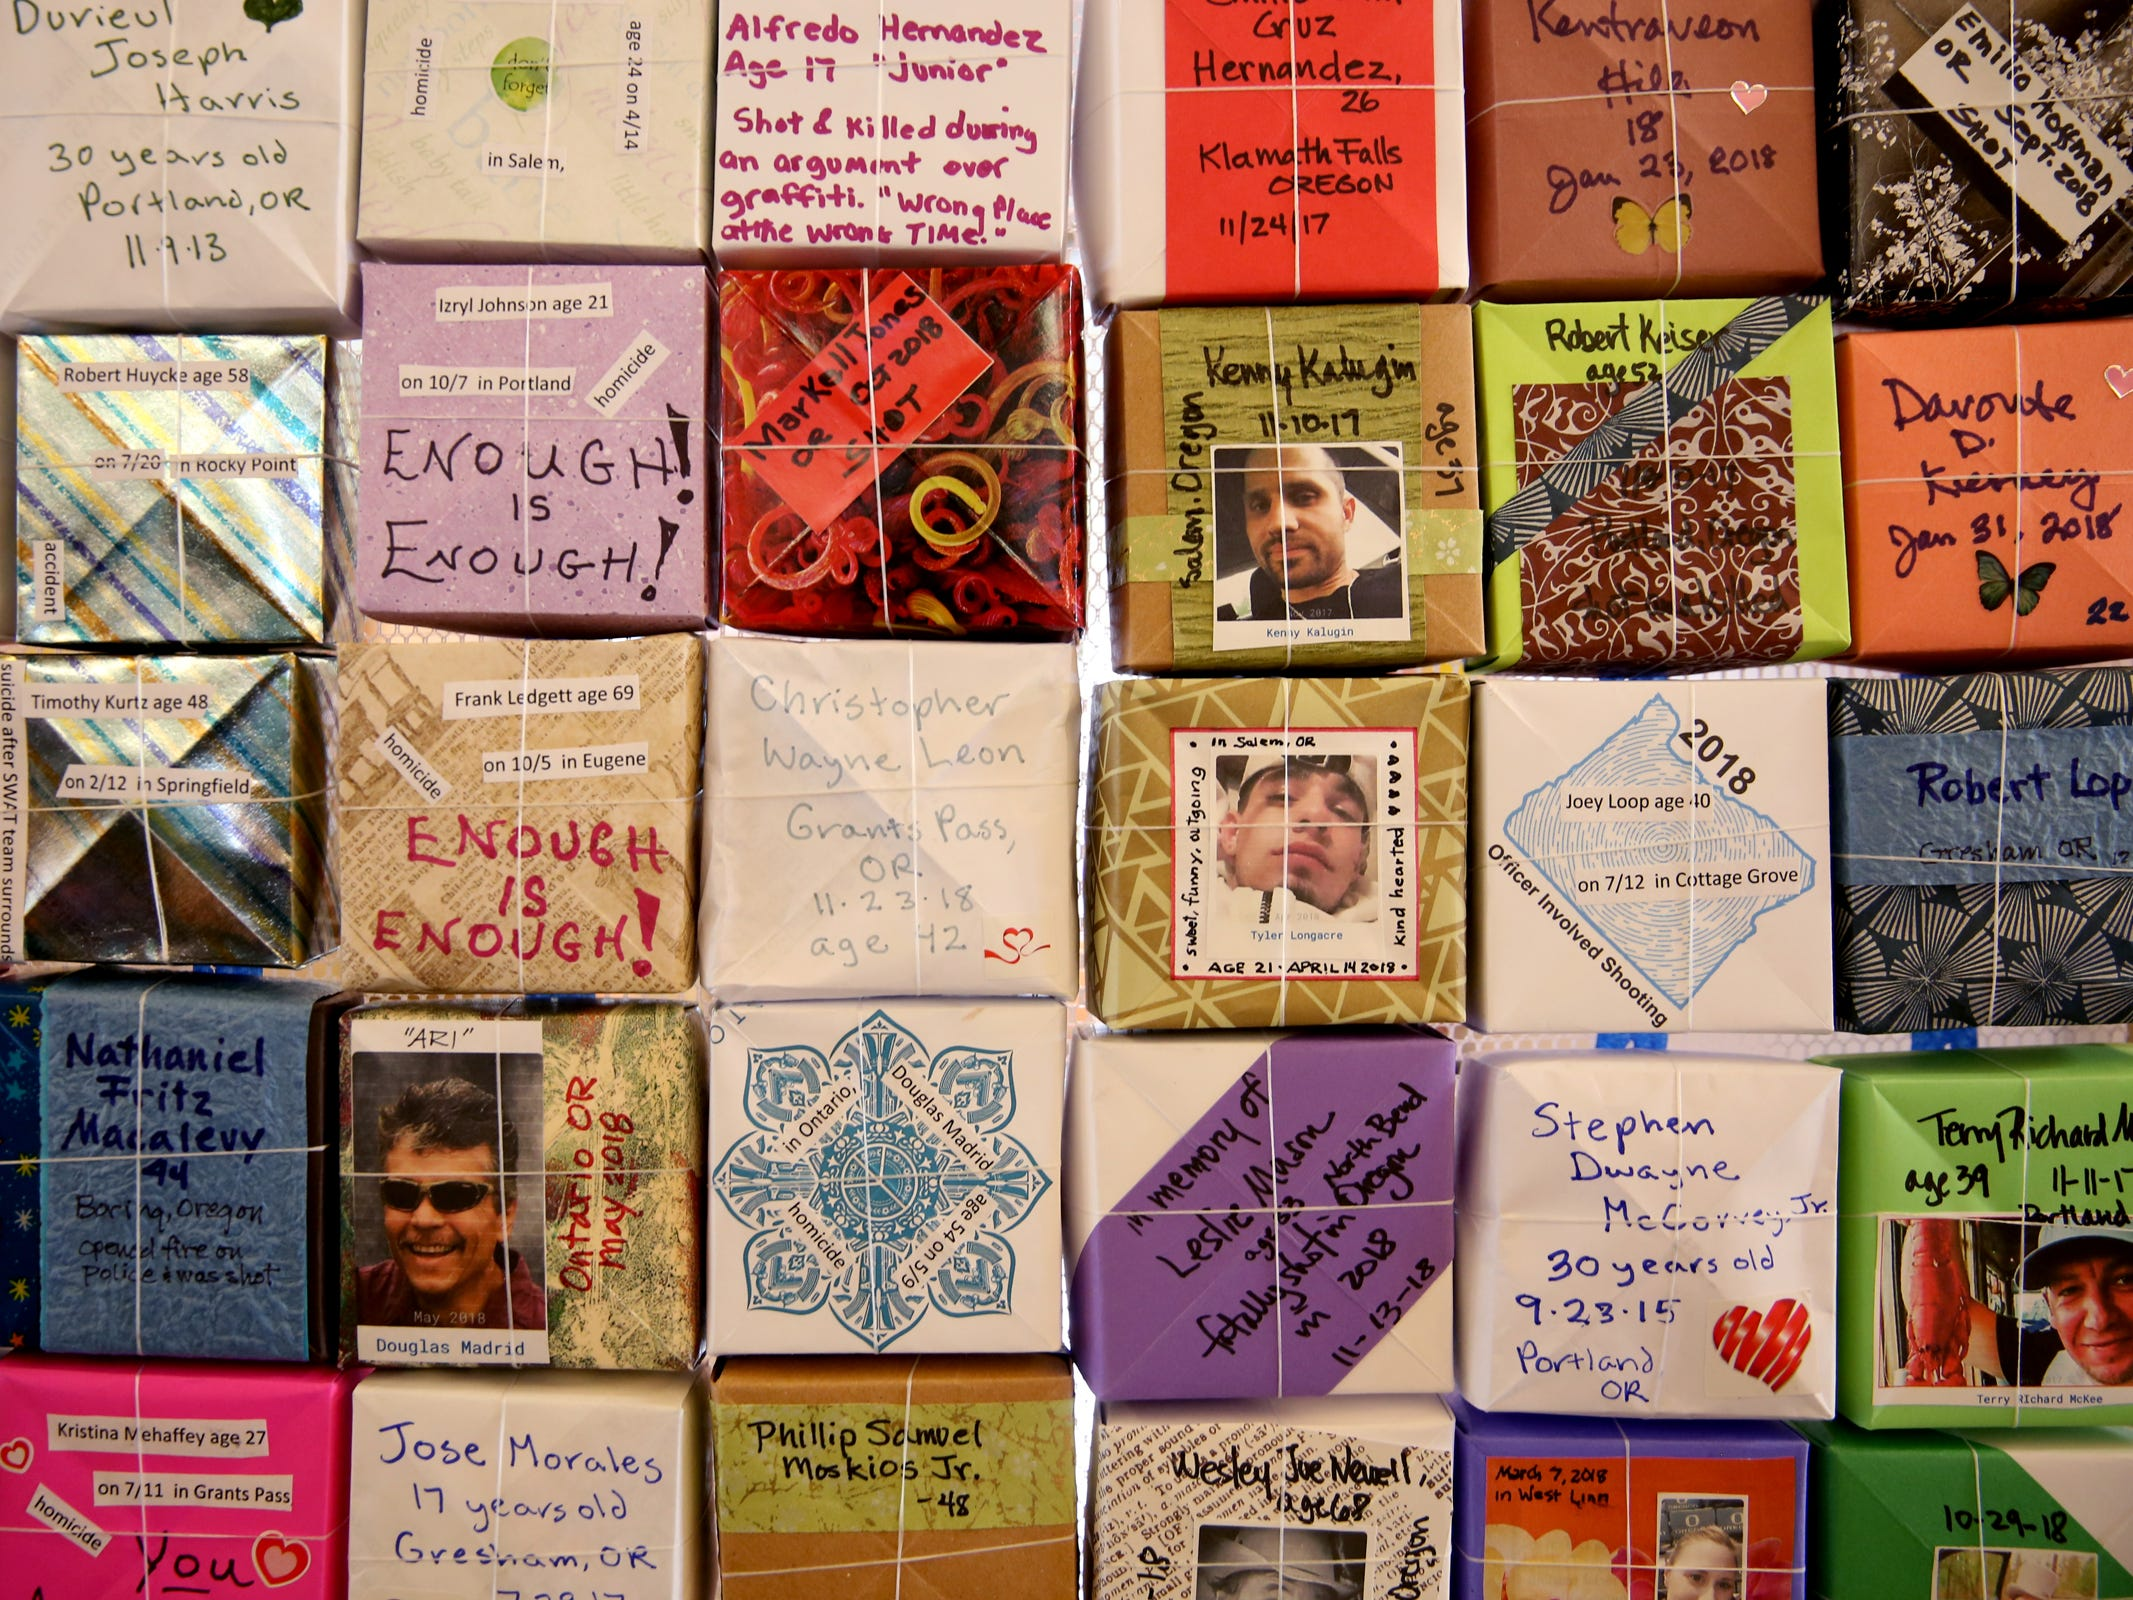 More than 37,000 handmade origami boxes, representing victims of gun violence, are displayed at the Oregon State Capitol in Salem on Friday, Feb. 15, 2019. The Soul Box Project, started by Portland artist Leslie Lee, aims to reveal the enormity of the gun fire epidemic.